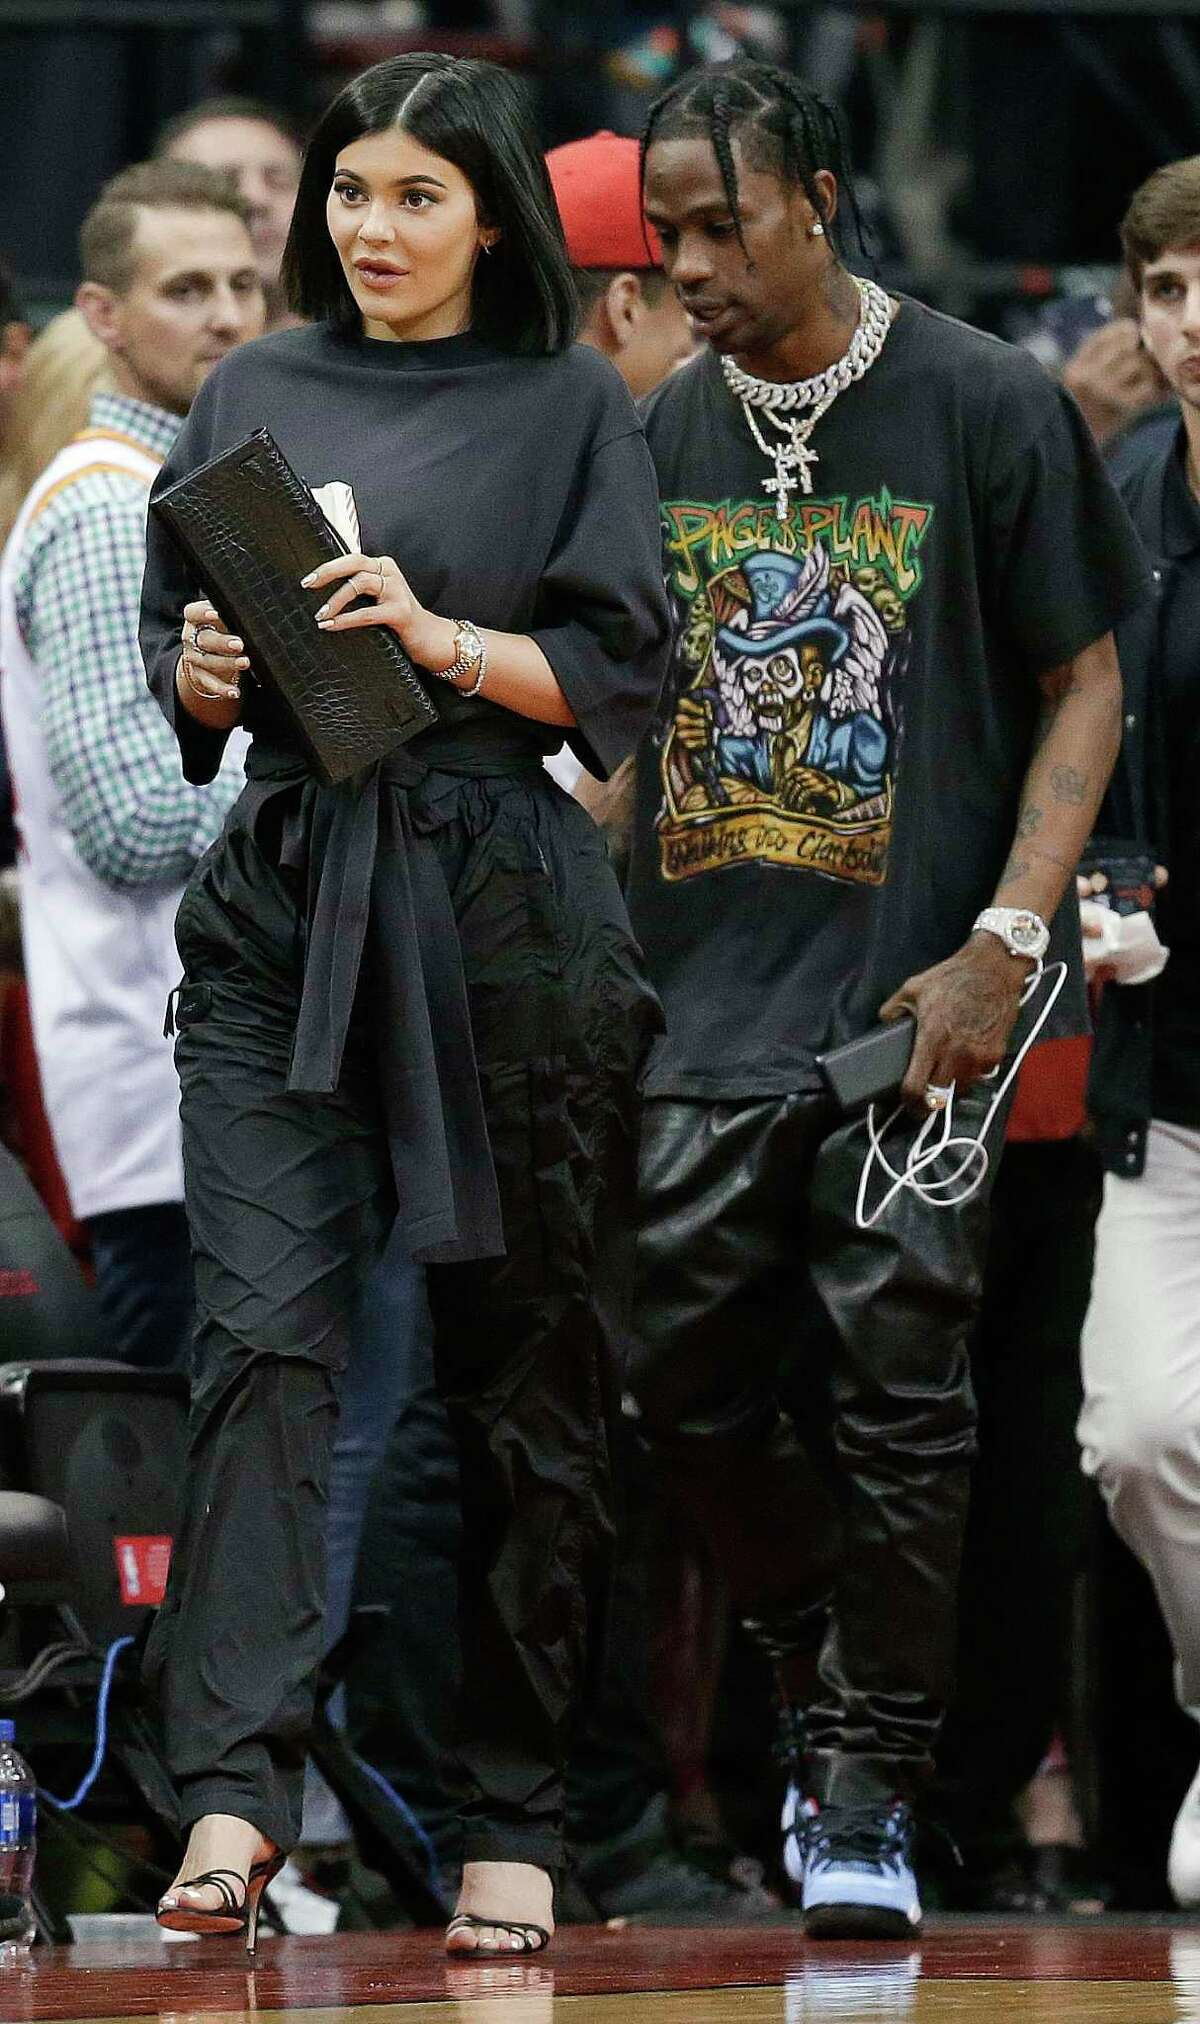 Kylie Jenner, left, and Travis Scott walks to their seats during the second half in Game 2 of a first-round NBA basketball playoff series between the Houston Rockets and the Minnesota Timberwolves, Wednesday, April 18, 2018, in Houston. (AP Photo/Eric Christian Smith) >> How Twitter reacted to Kylie Jenner's baby name.